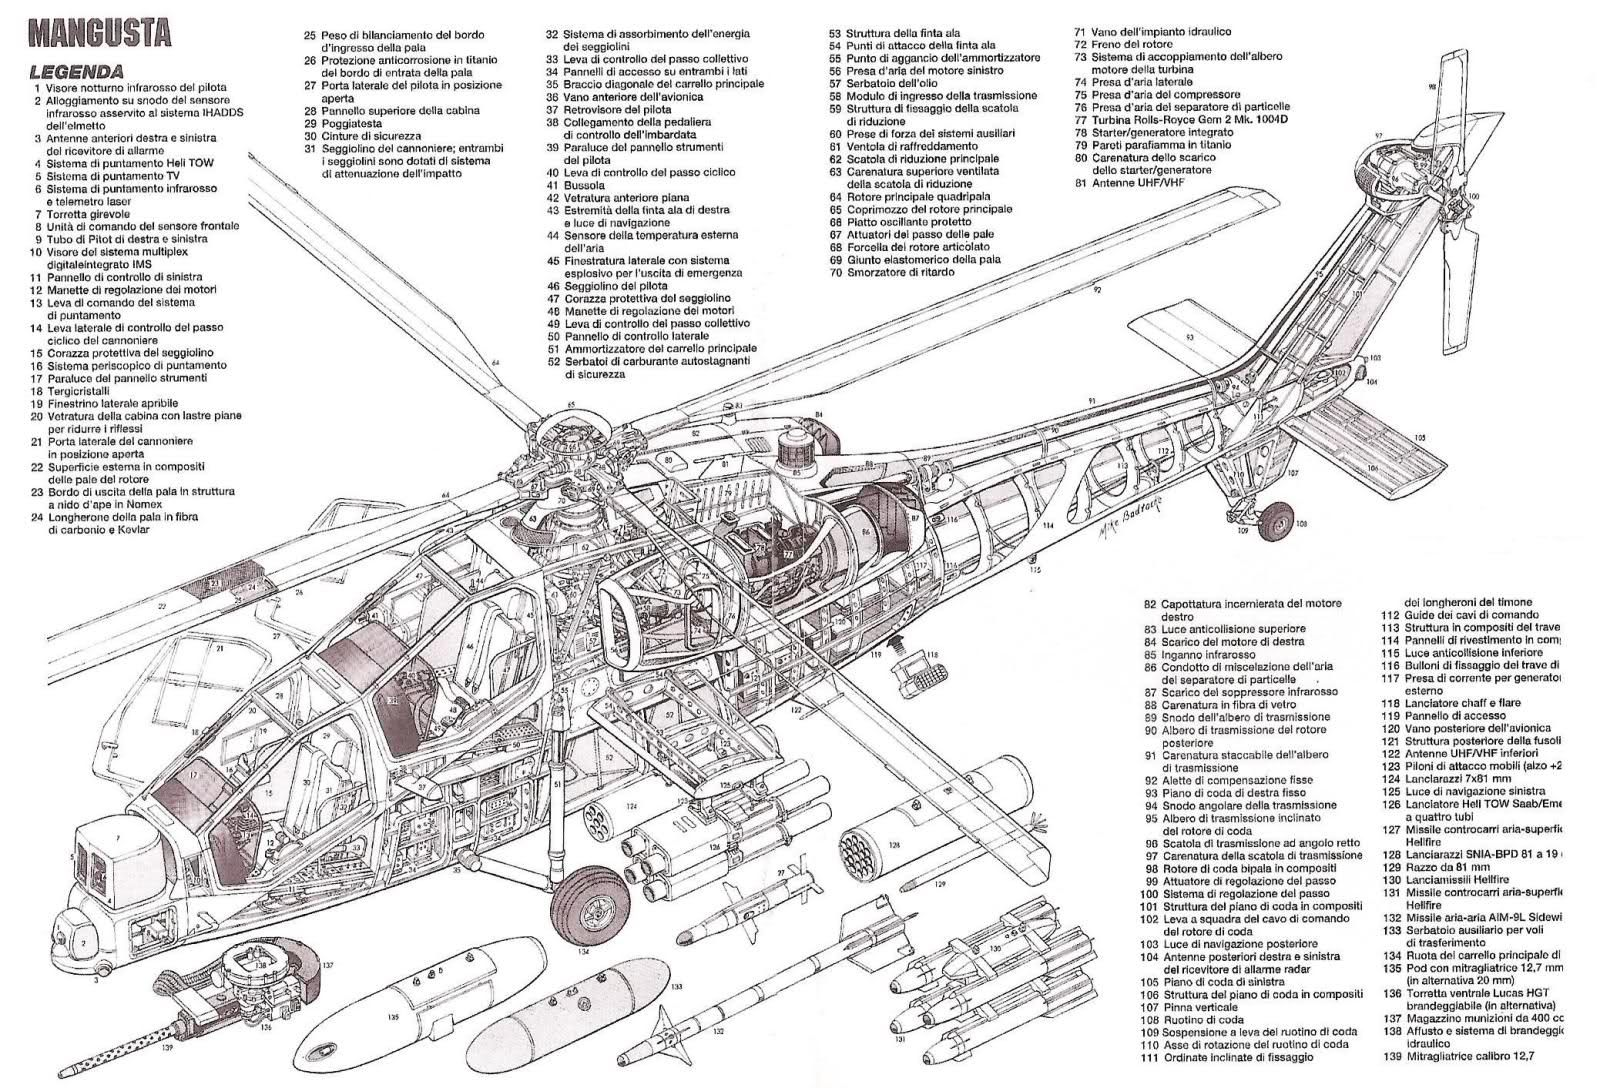 Military Aircrafts: Designs and Concepts - Page 4 | Modern Aviation ...